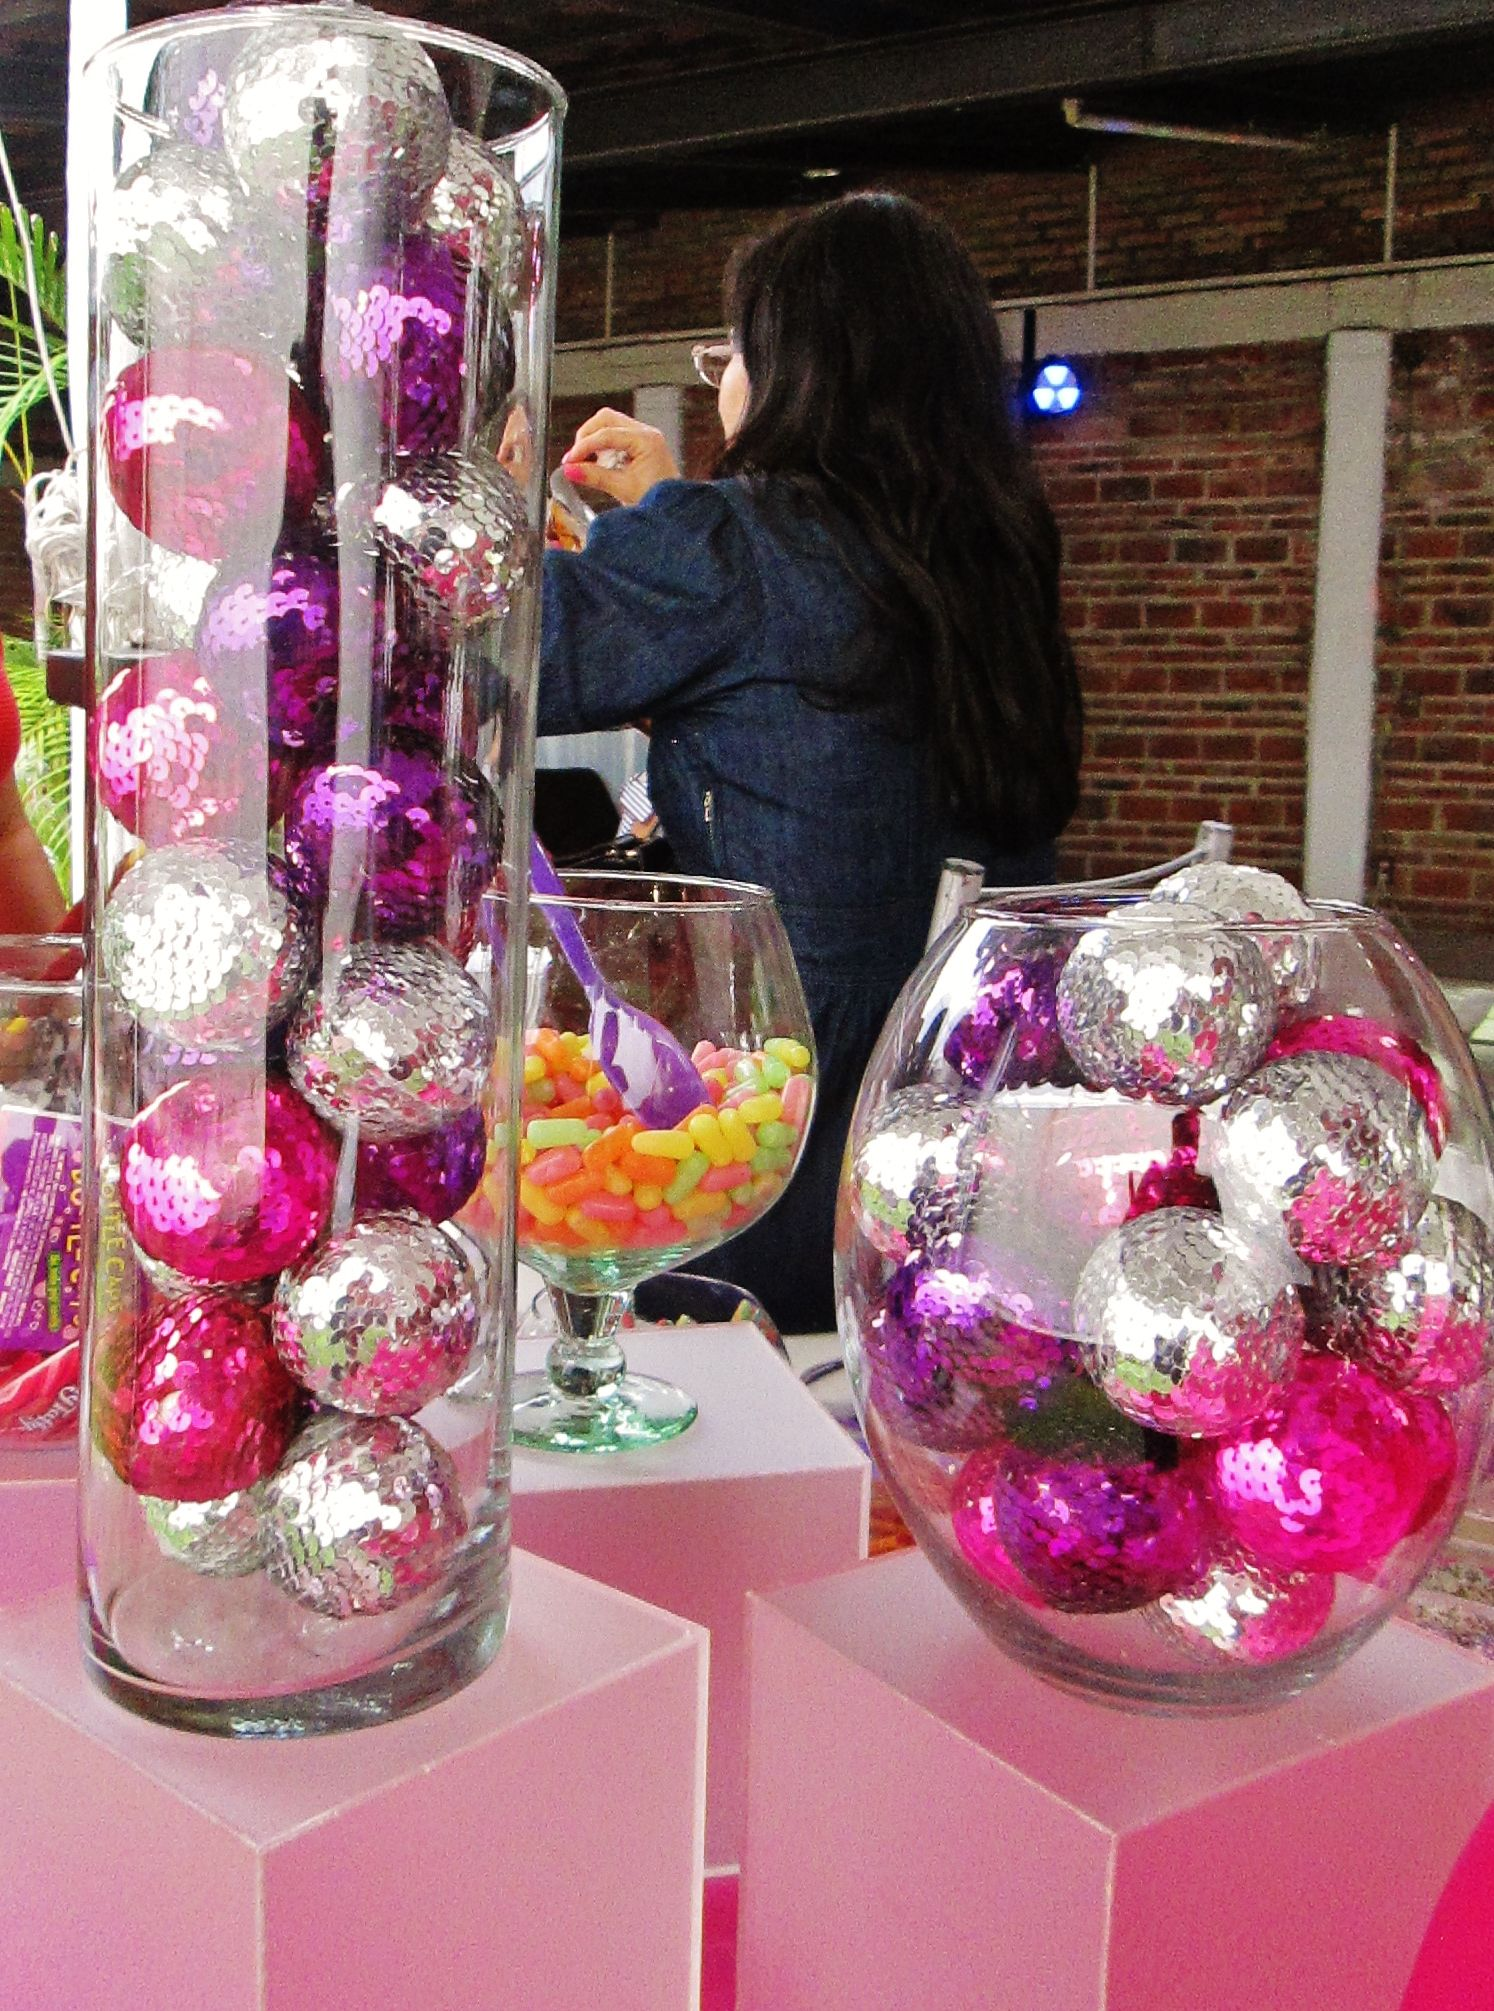 Christmas Decorations Used For Centerpieces For Disco Party